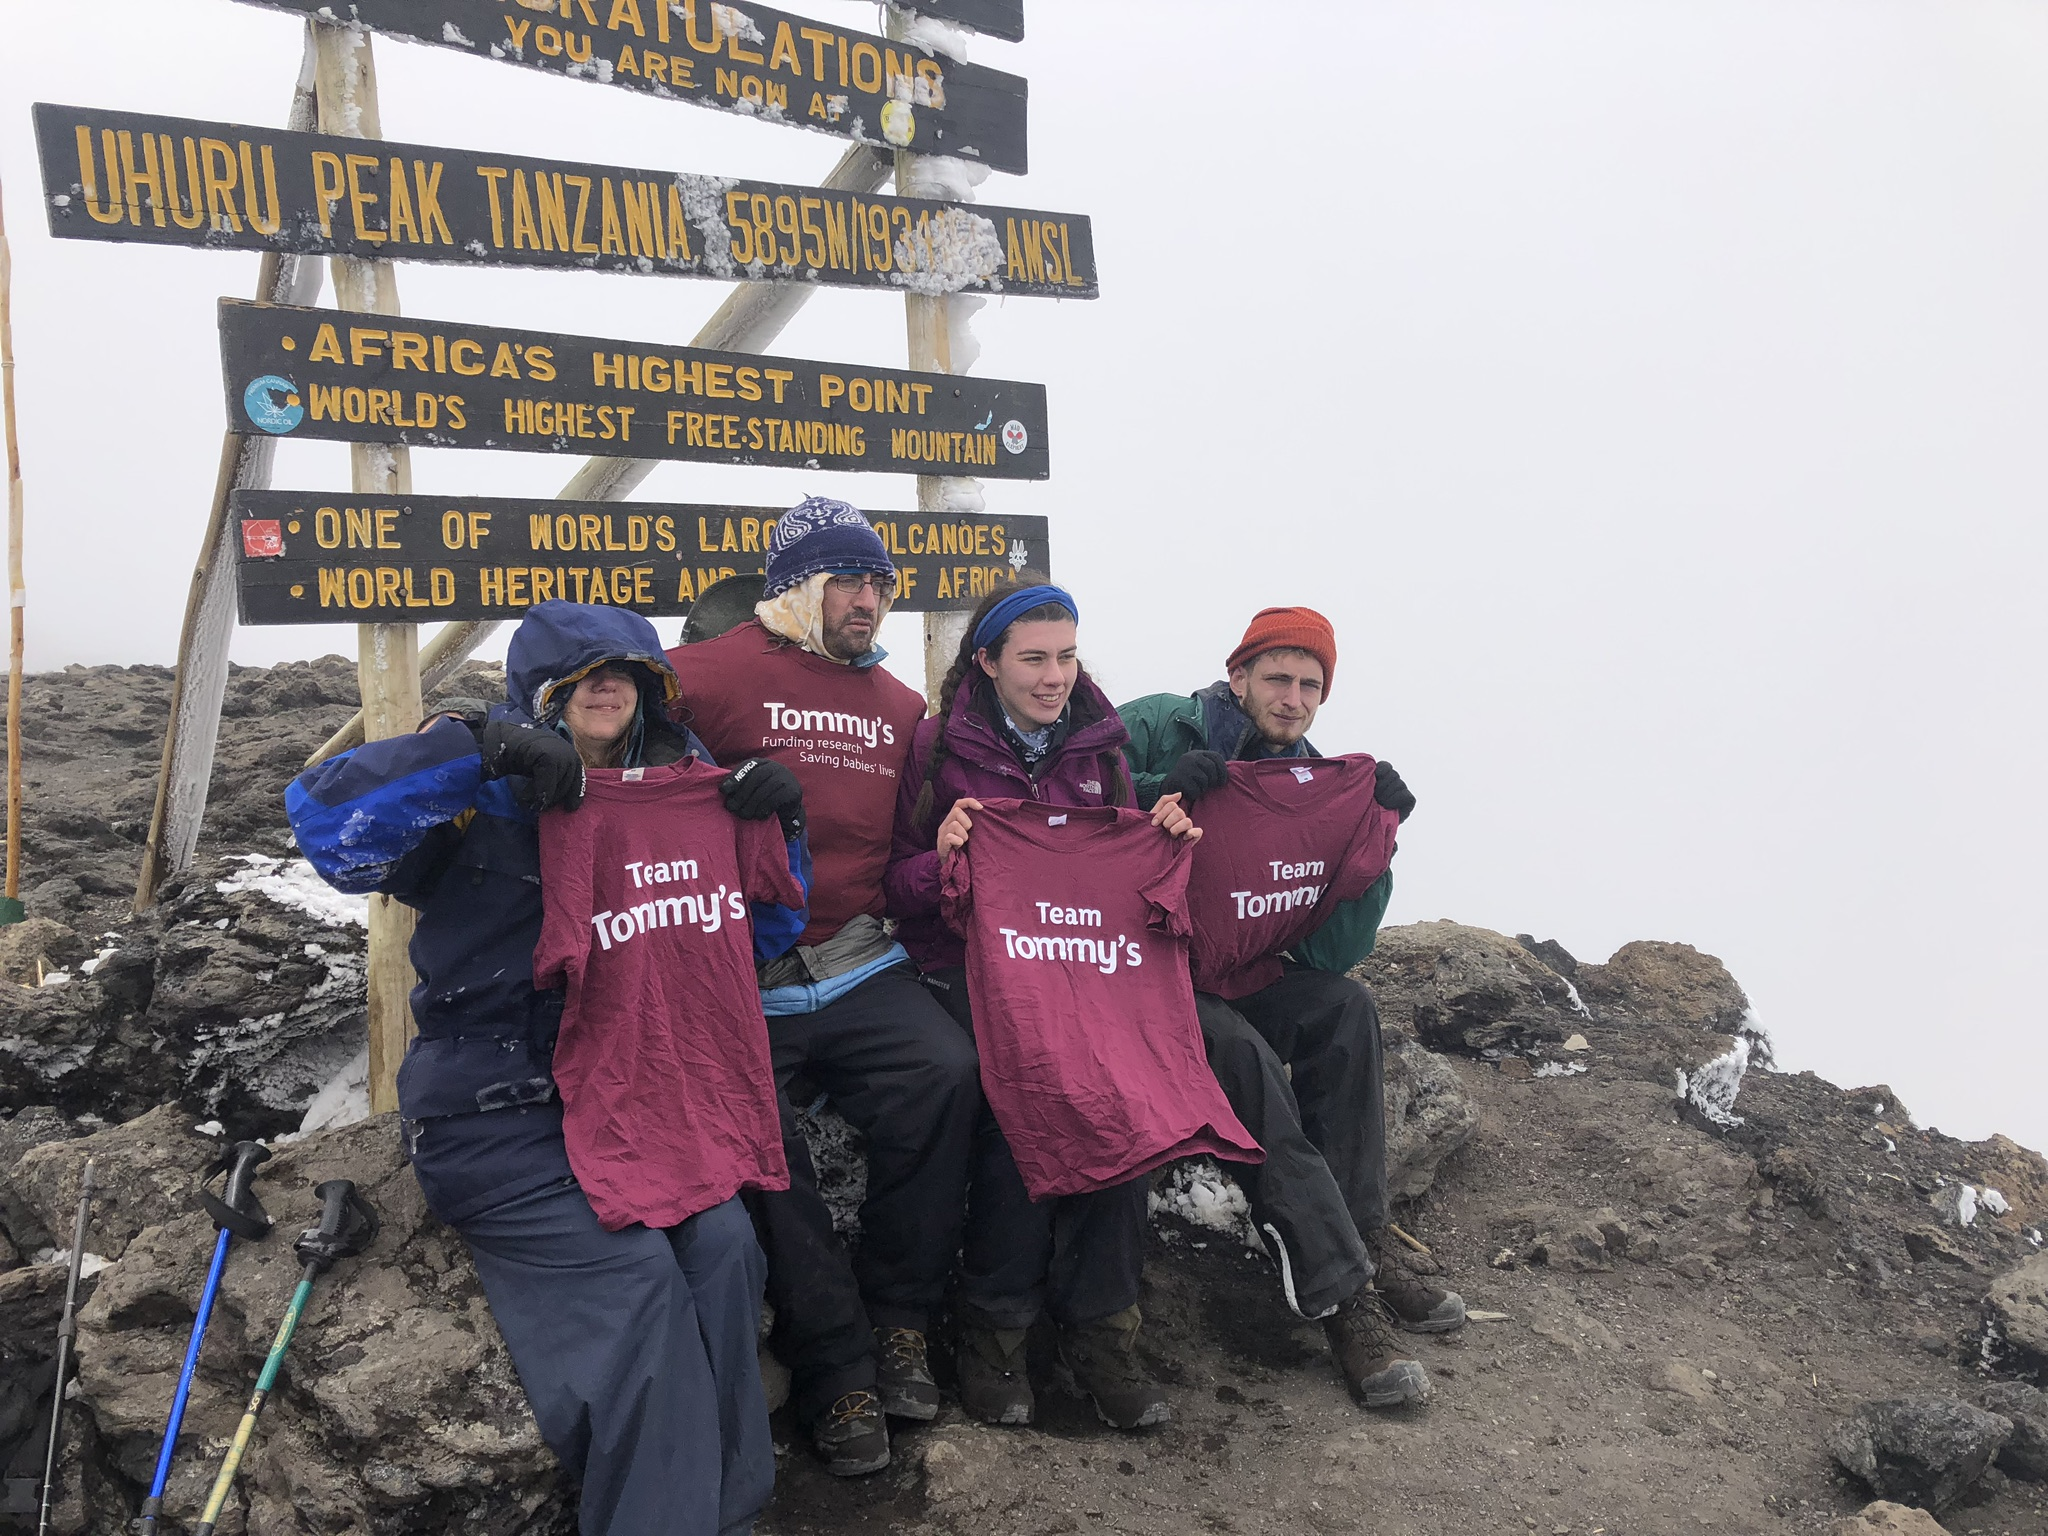 Mount Kilimanjaro Climb for Tommy's